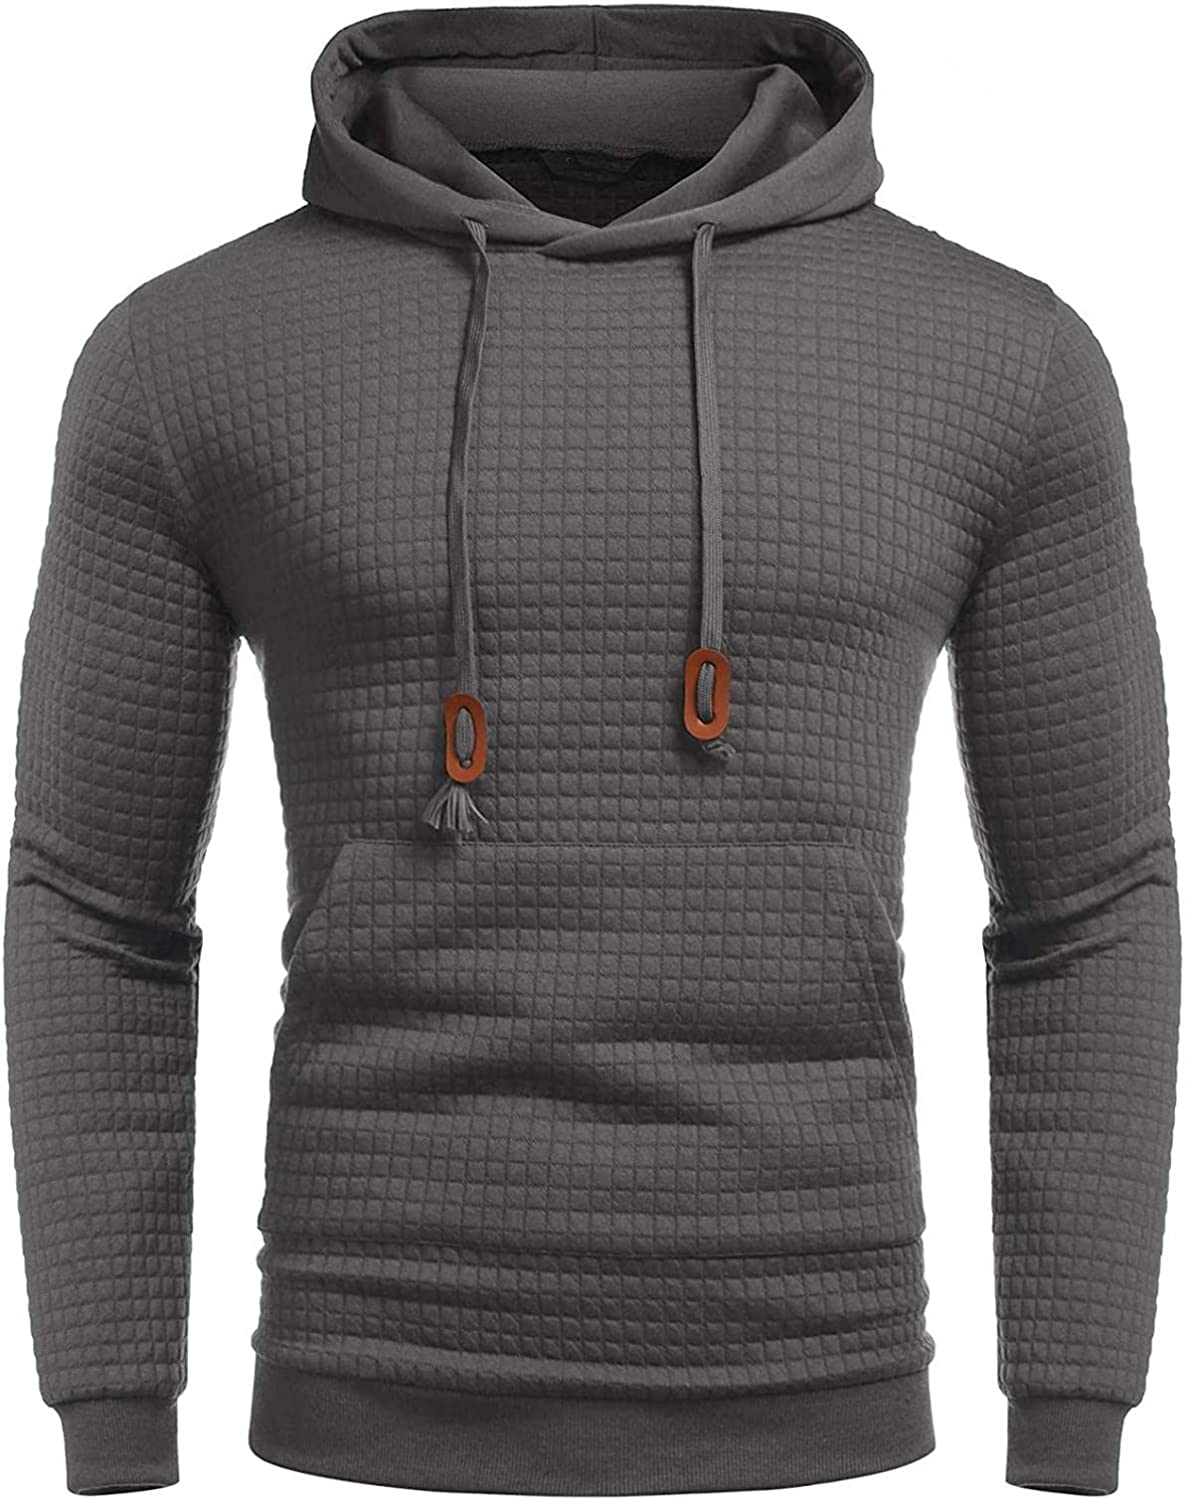 Men's Hoodies Pullover, Mens Autumn Winter Casual Long Sleeve Solid Sports Outwear Hooded Square Sweatshirts Pockets